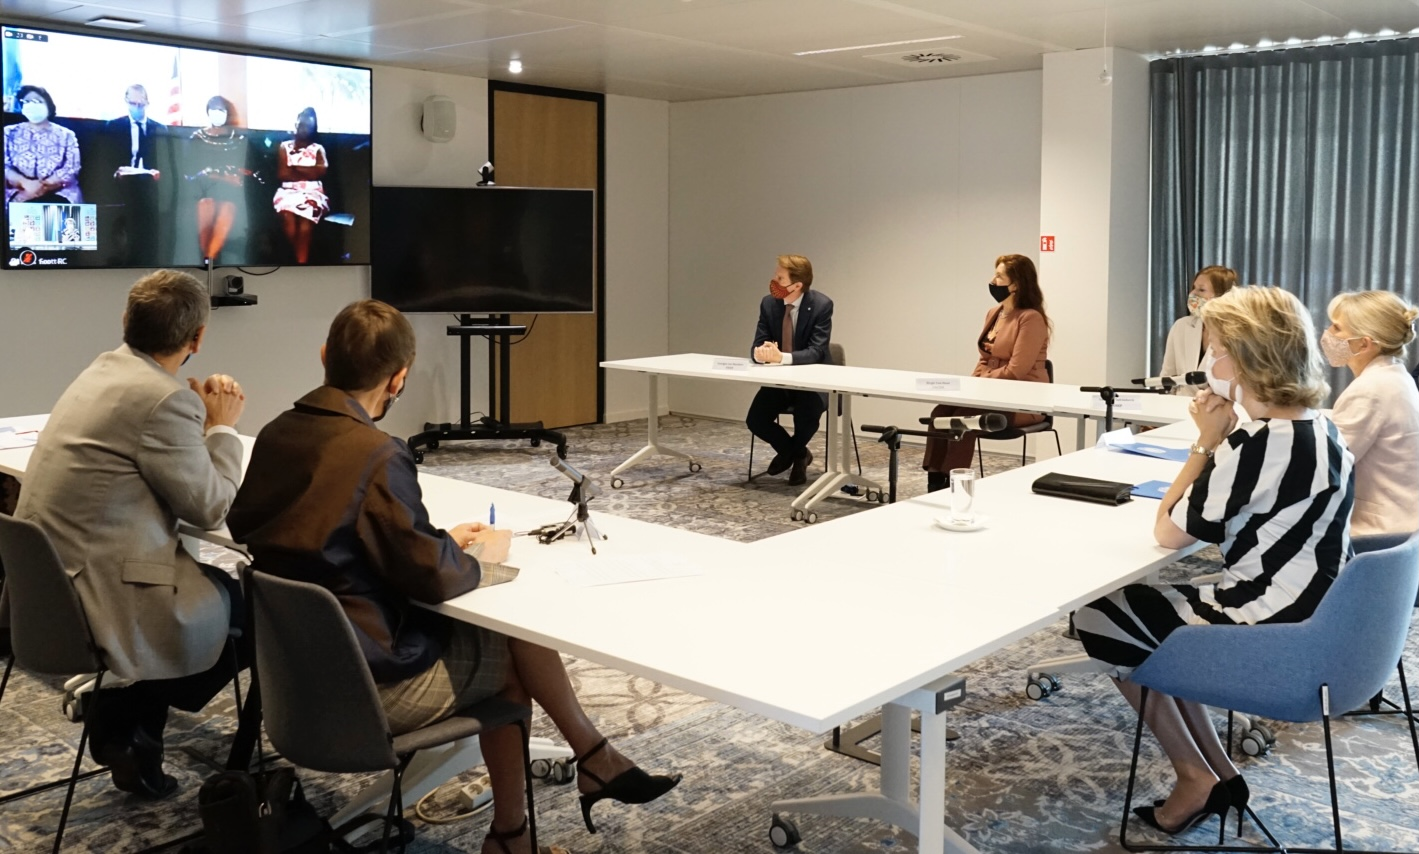 The Queen of the Belgians Pays a Virtual Visit to the UN Country Team In Liberia